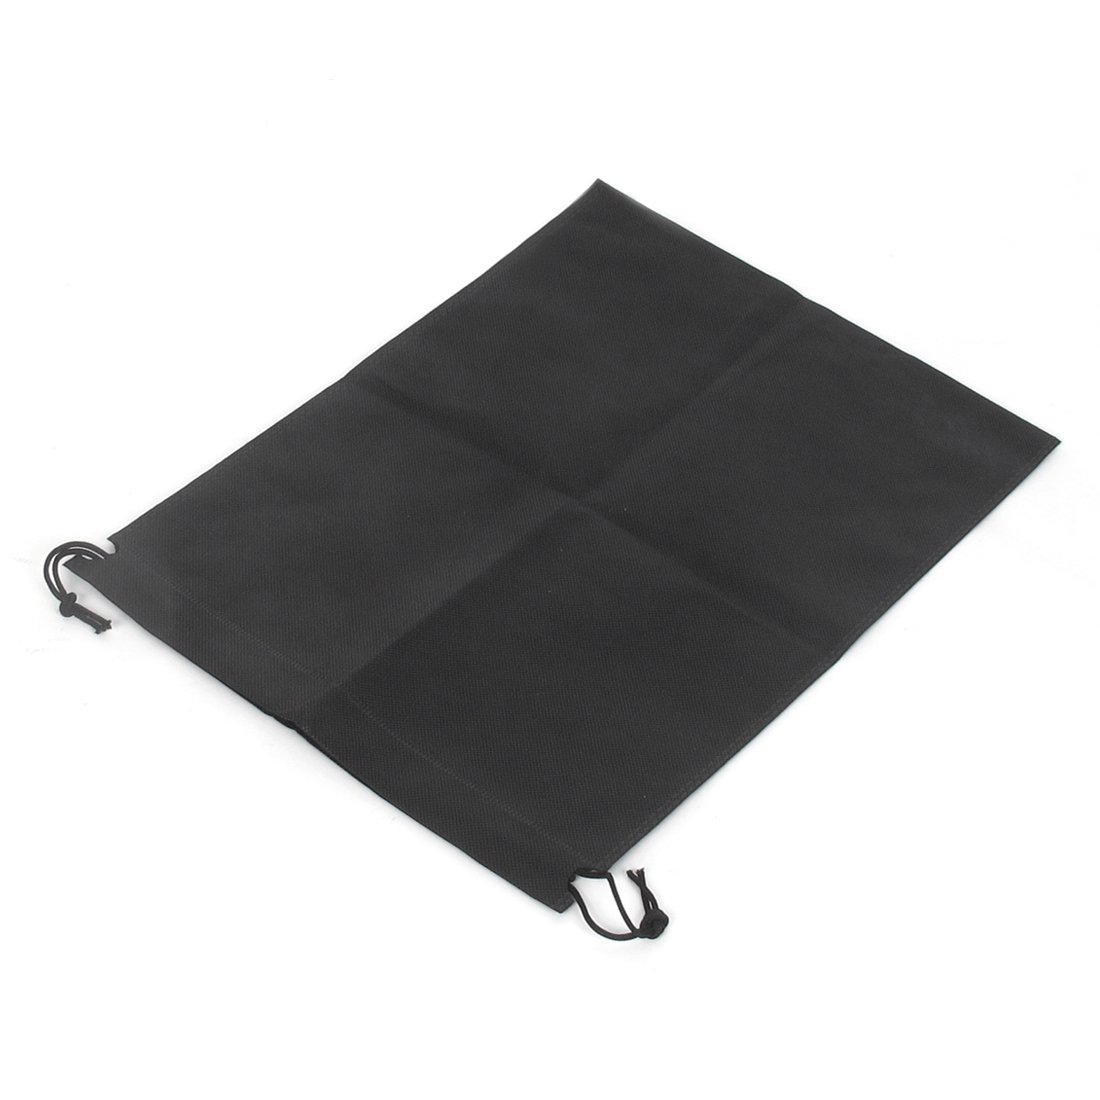 Traveling Clothes Dust Cover Storage Drawstring Bags 40 x 30cm Black